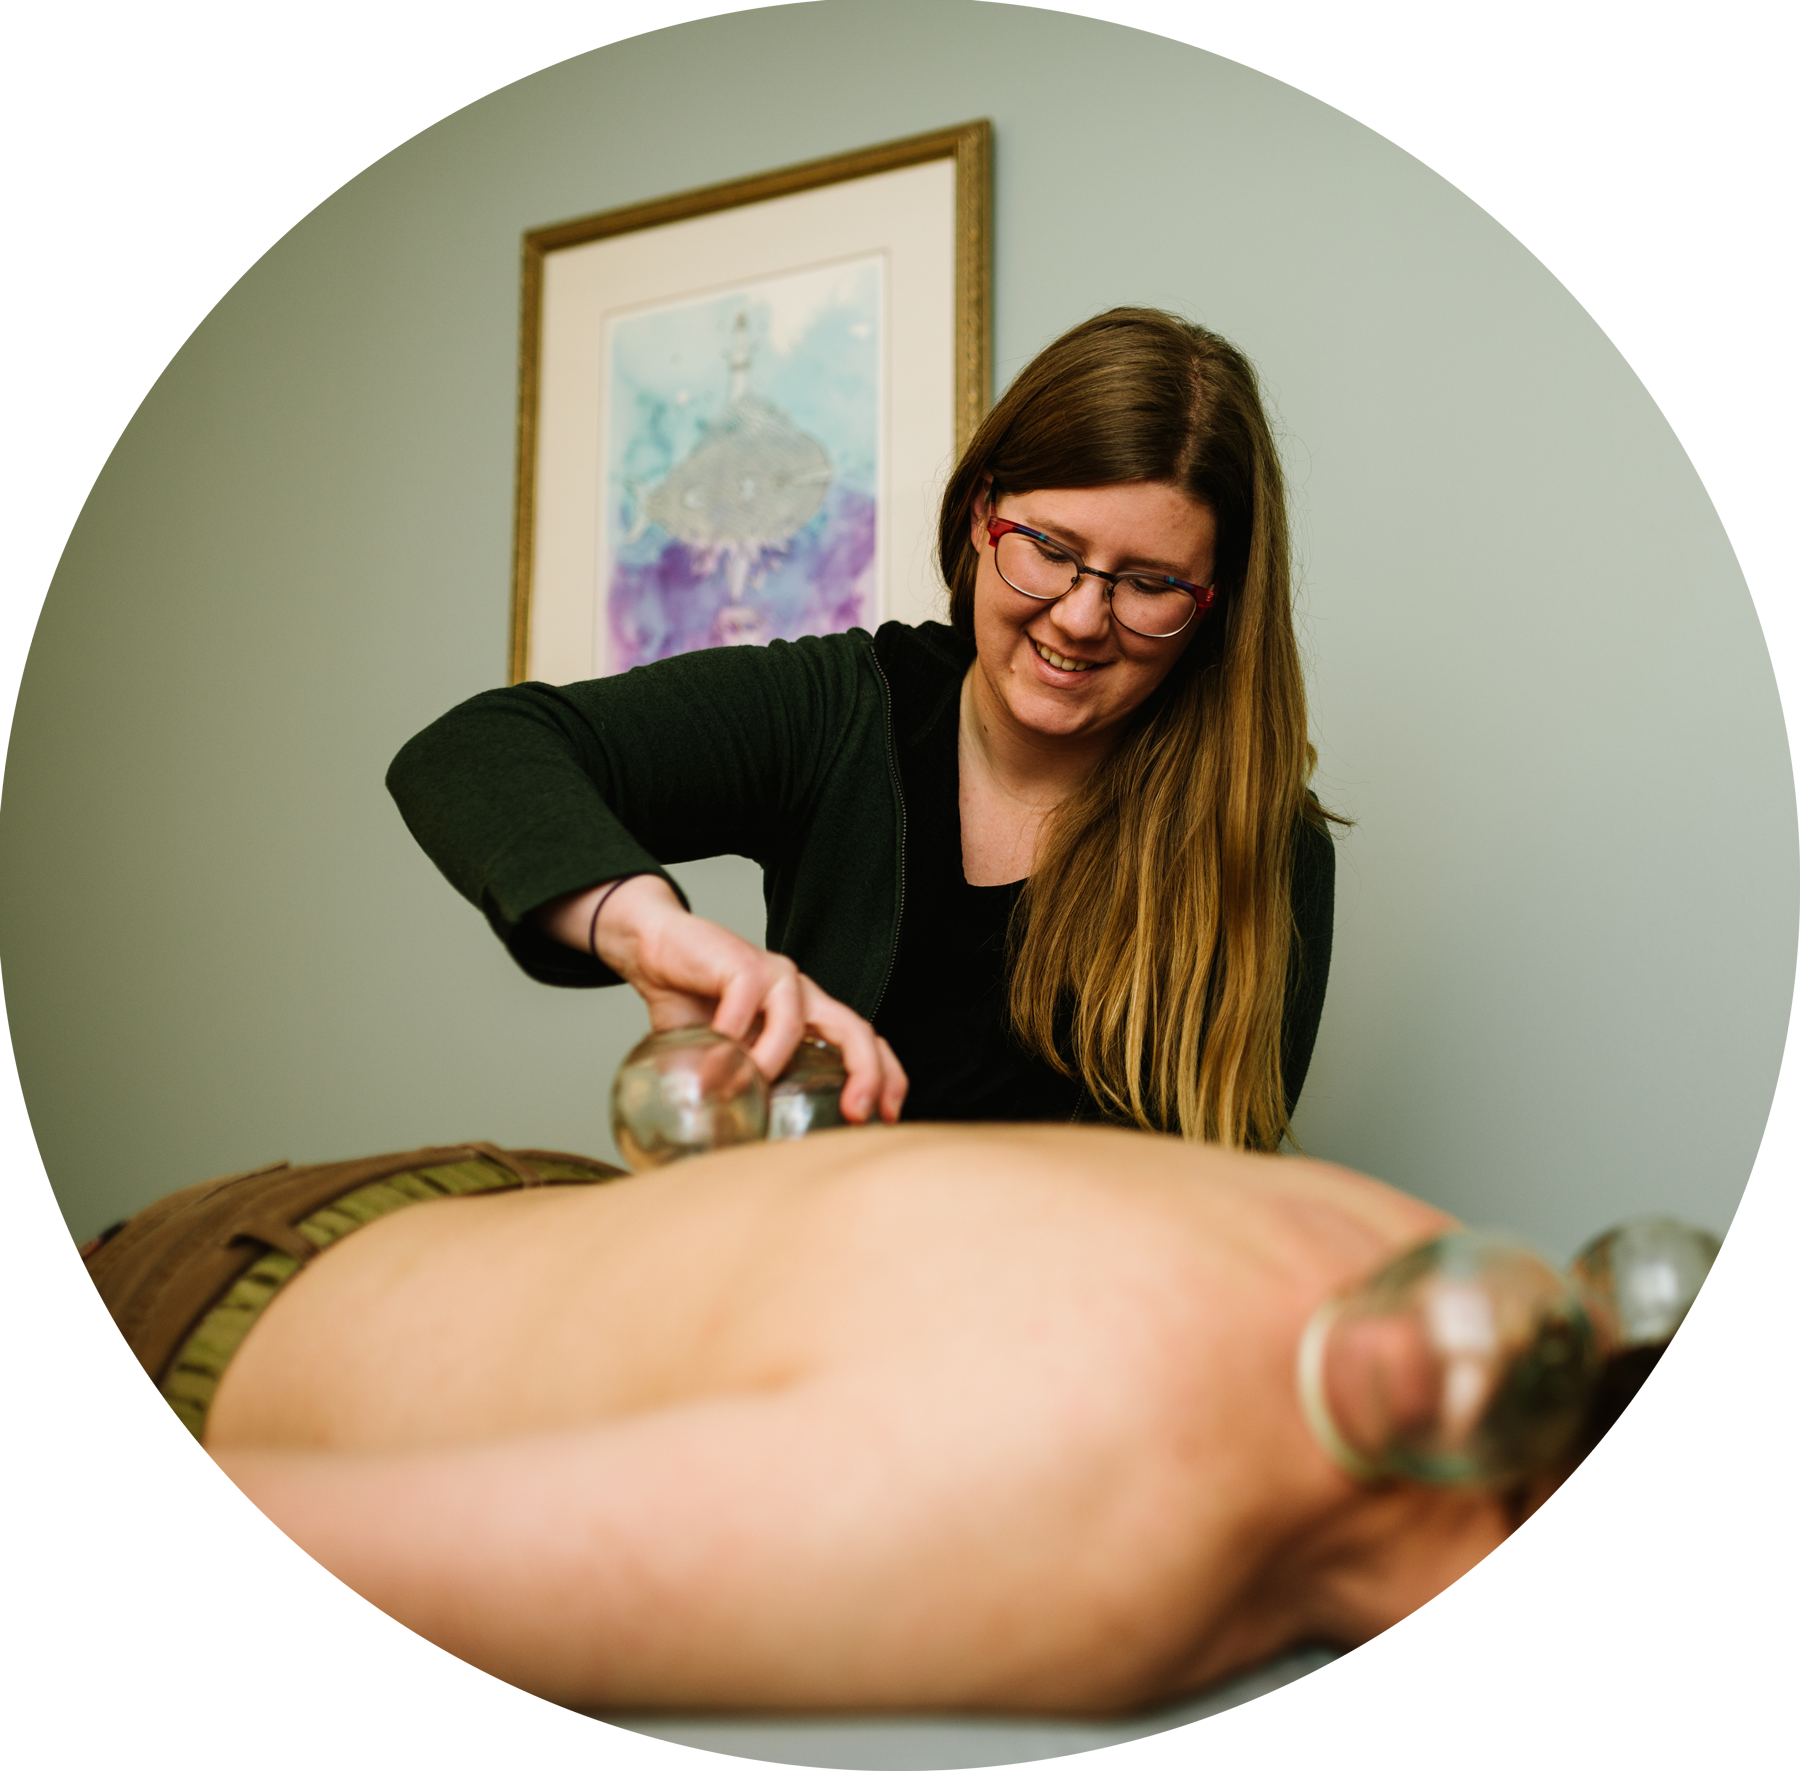 Cupping - A technique that uses glass cups as suction devices, typically along the back. Muscles are able to relax, while also working the deep tissues and removing toxins and blockages.